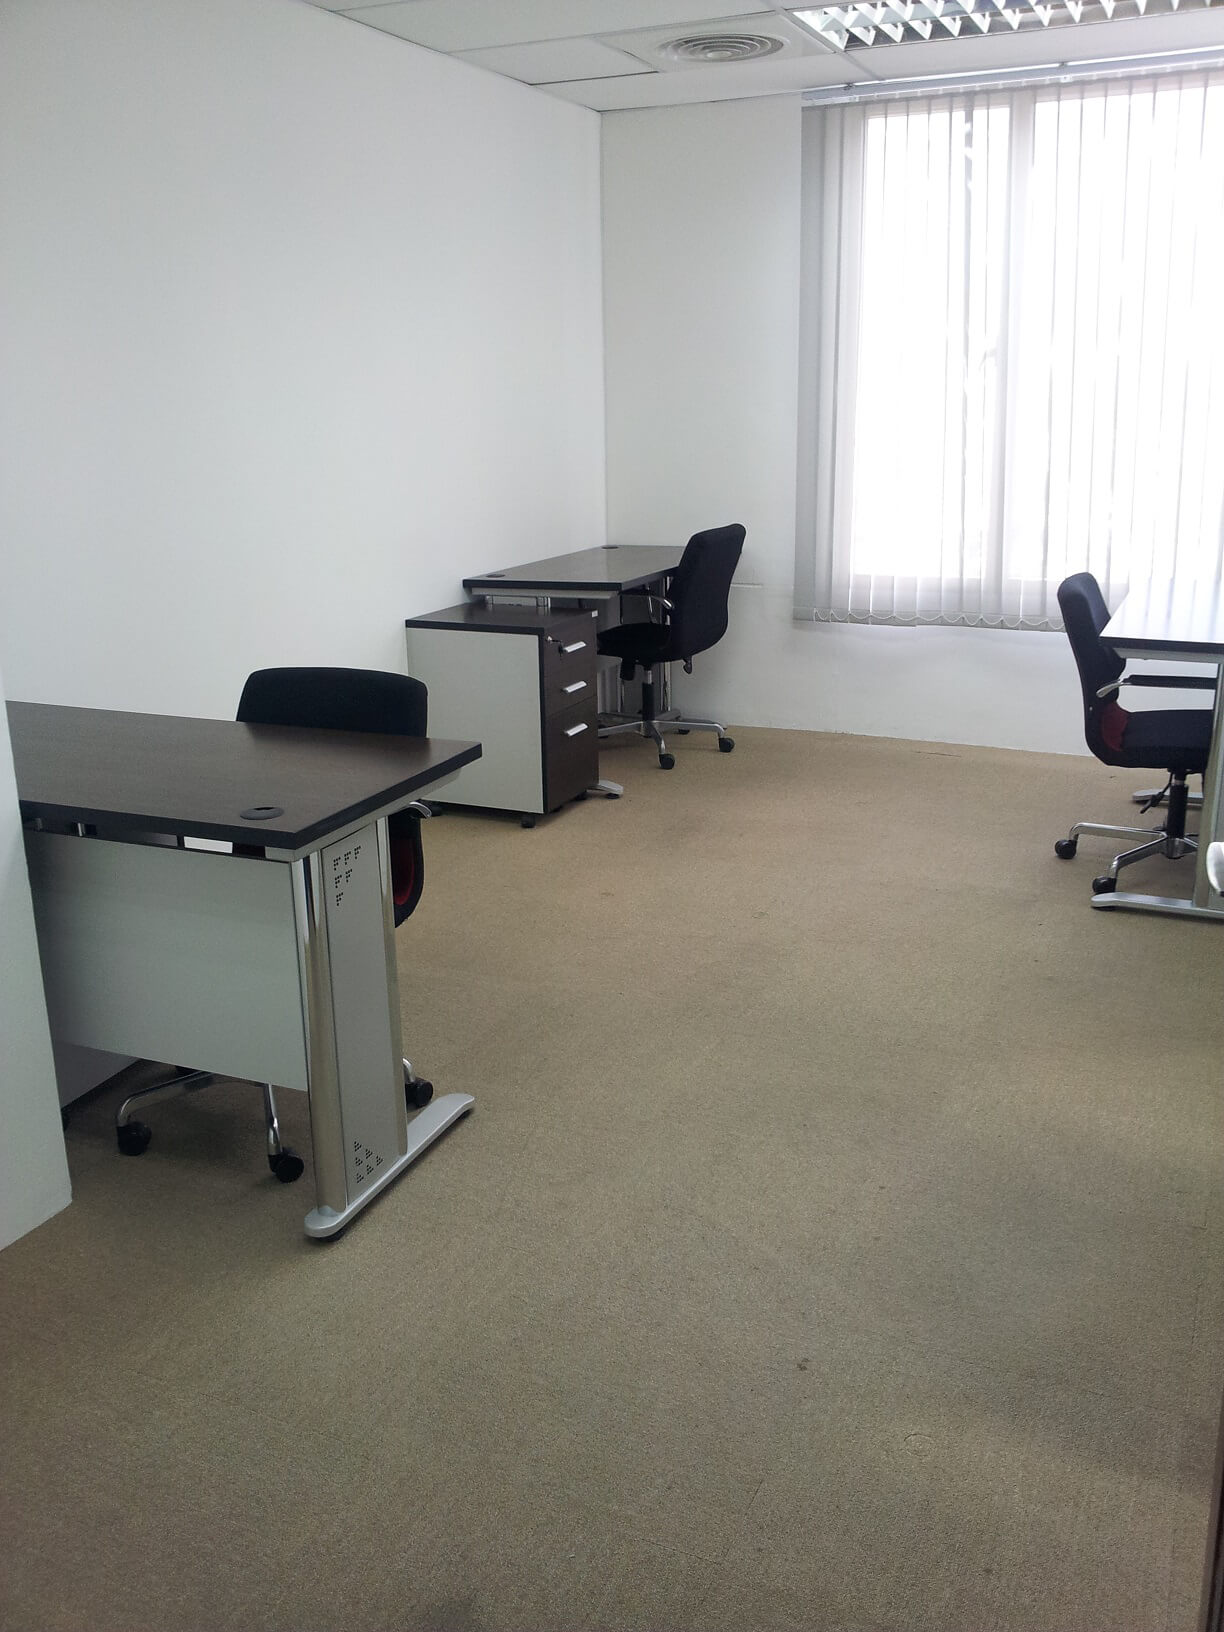 Fully Furnished And Equipped Private Office We Provide Offices That Can Accommodate From 1 To 9 Persons Furniture Layout May Be Modified